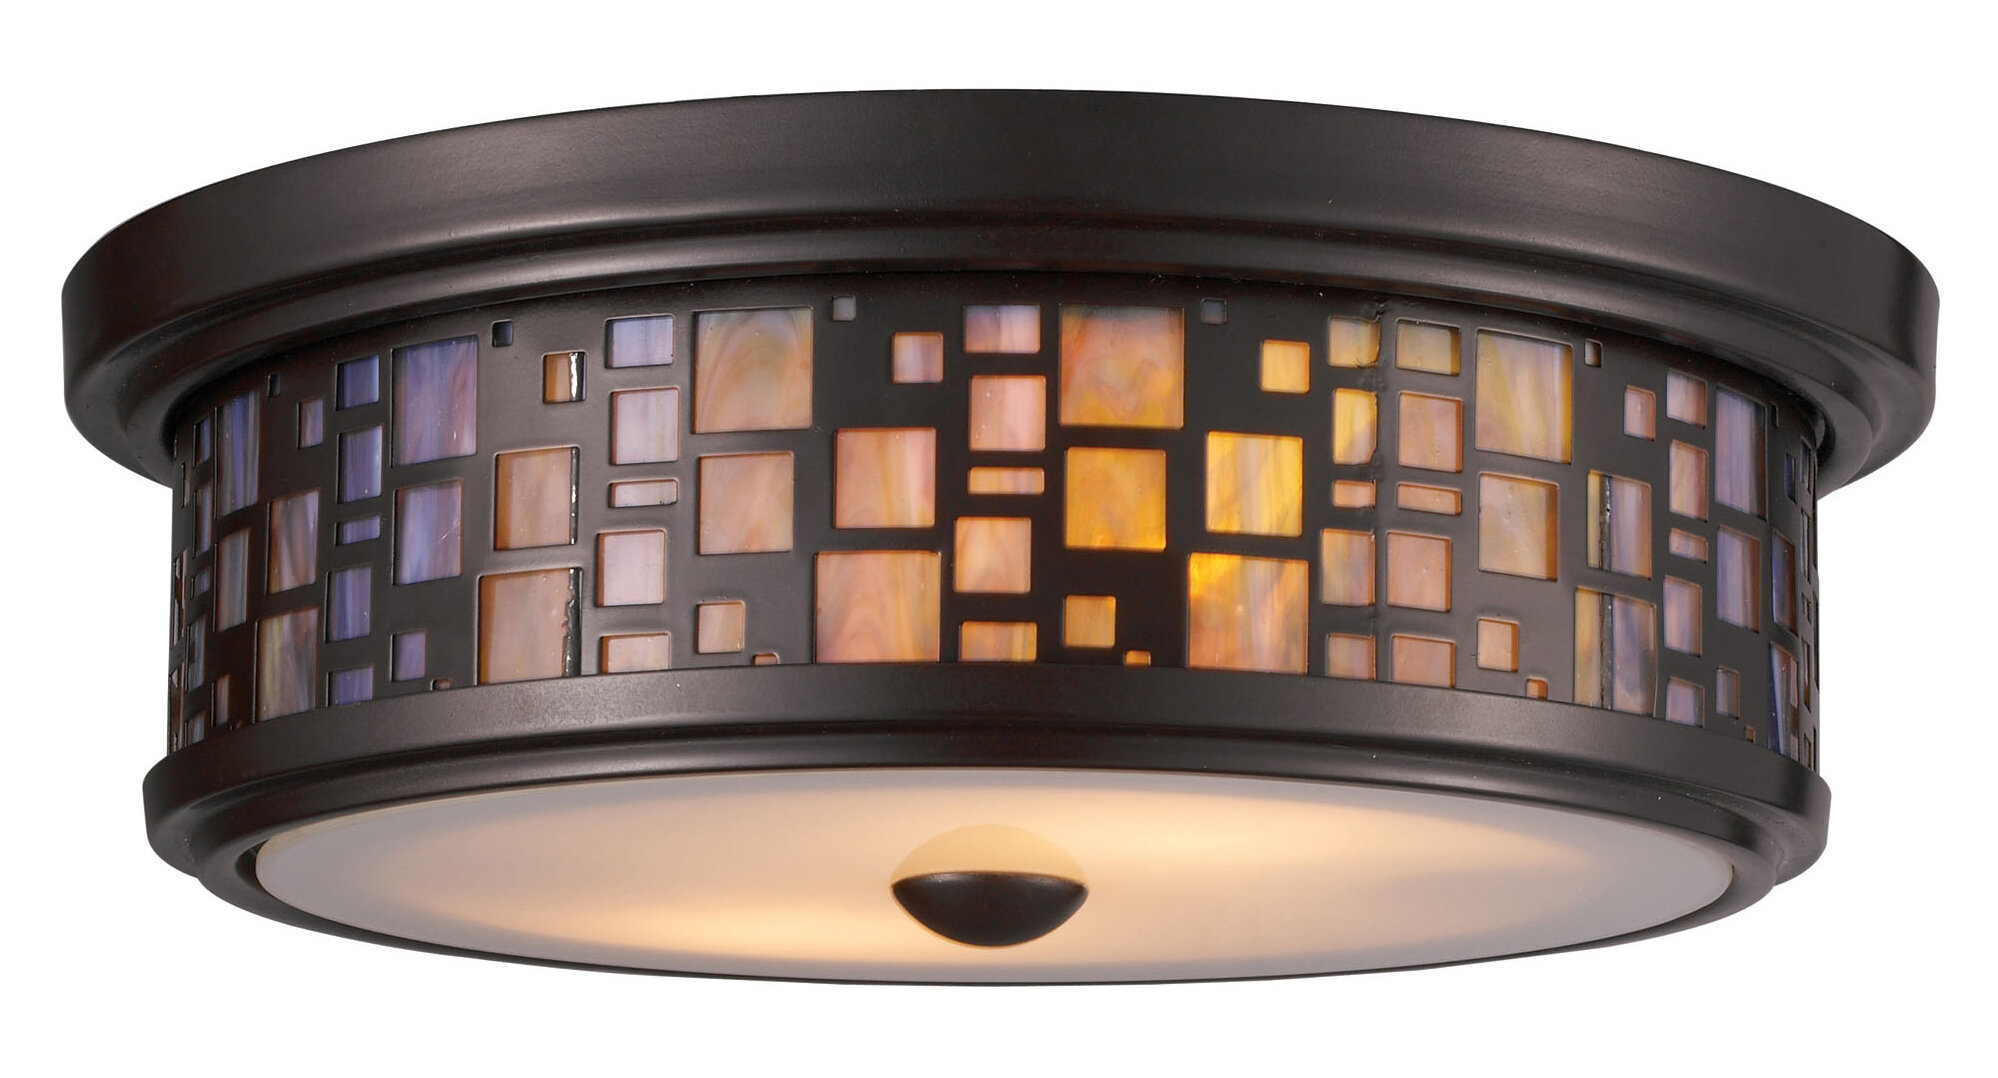 Red barrel studio clara 2 light flush mount reviews wayfair